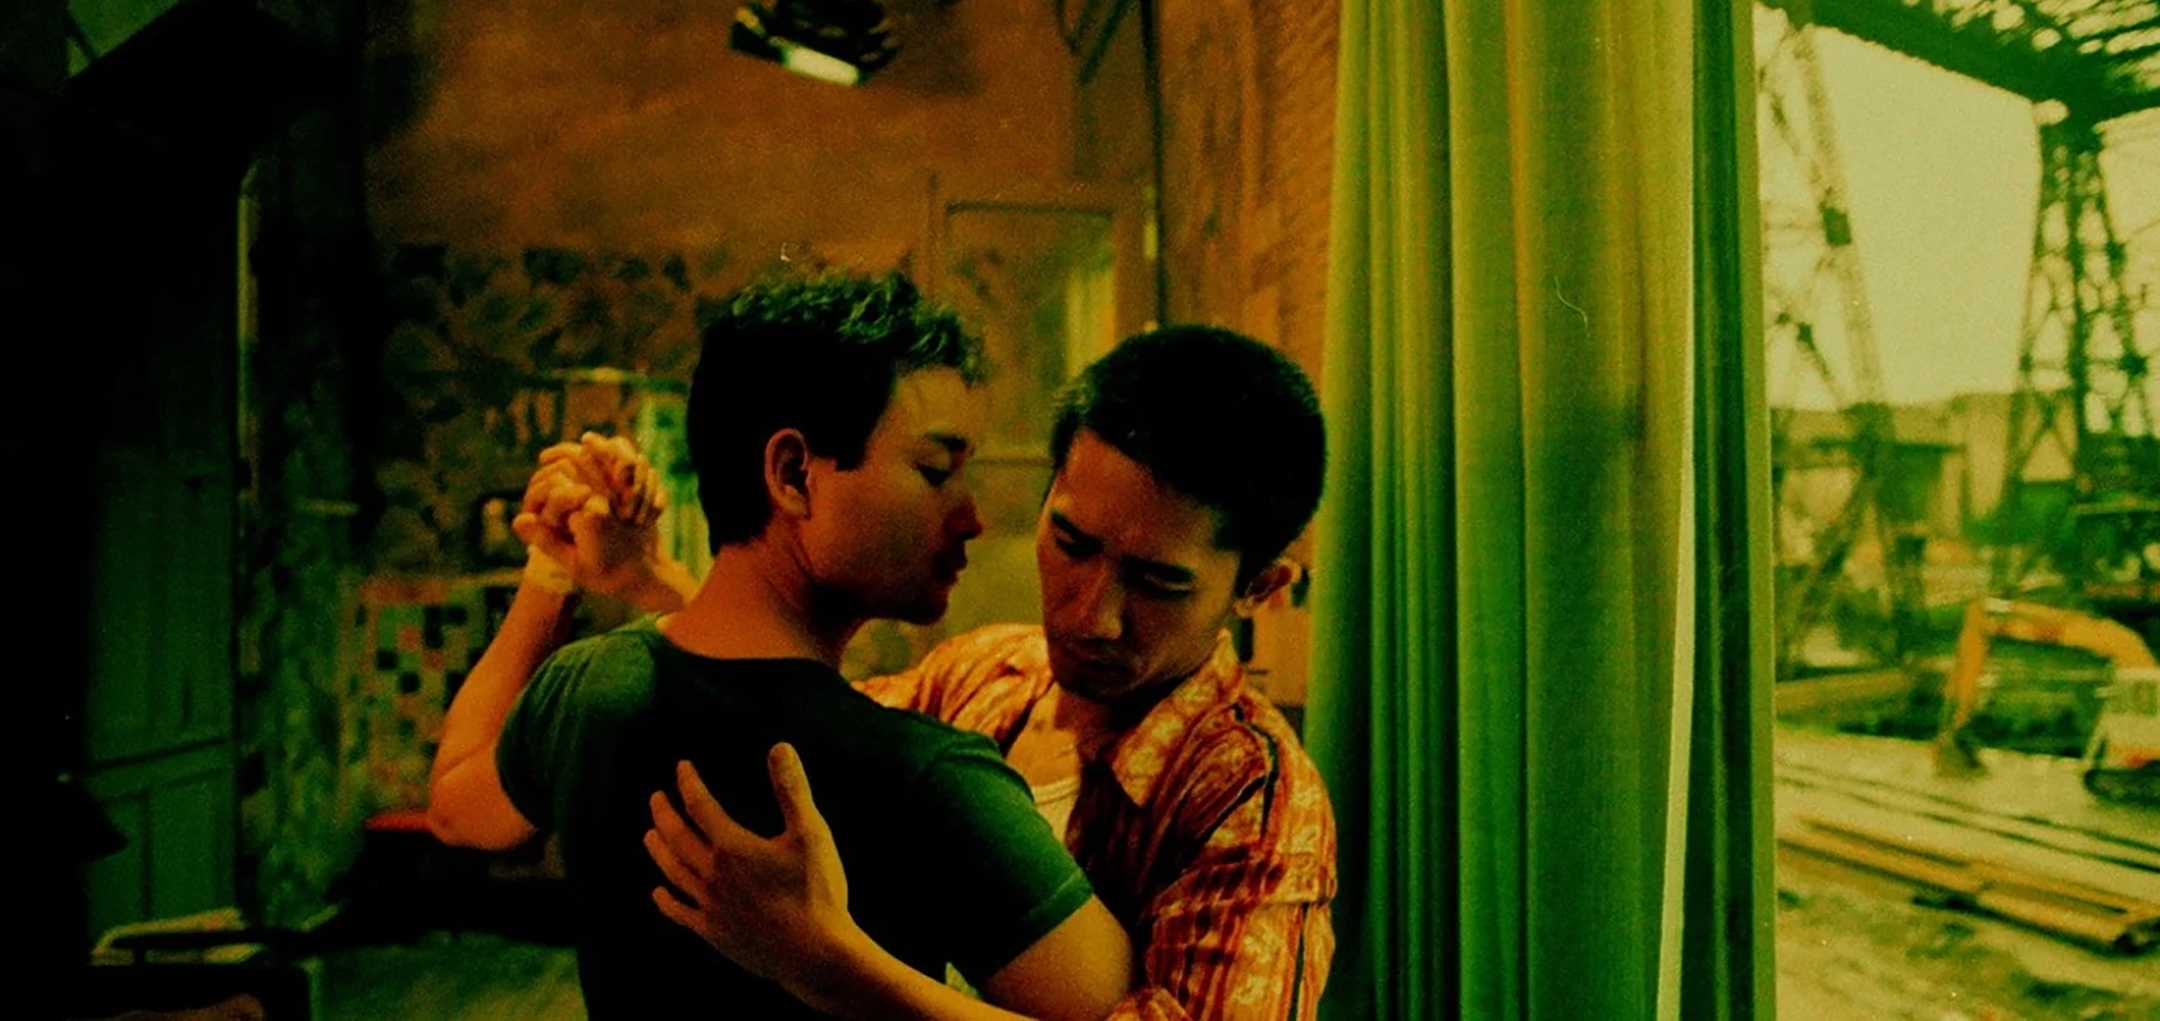 Happy Together - Leslie Cheung and Tony Leung dancing